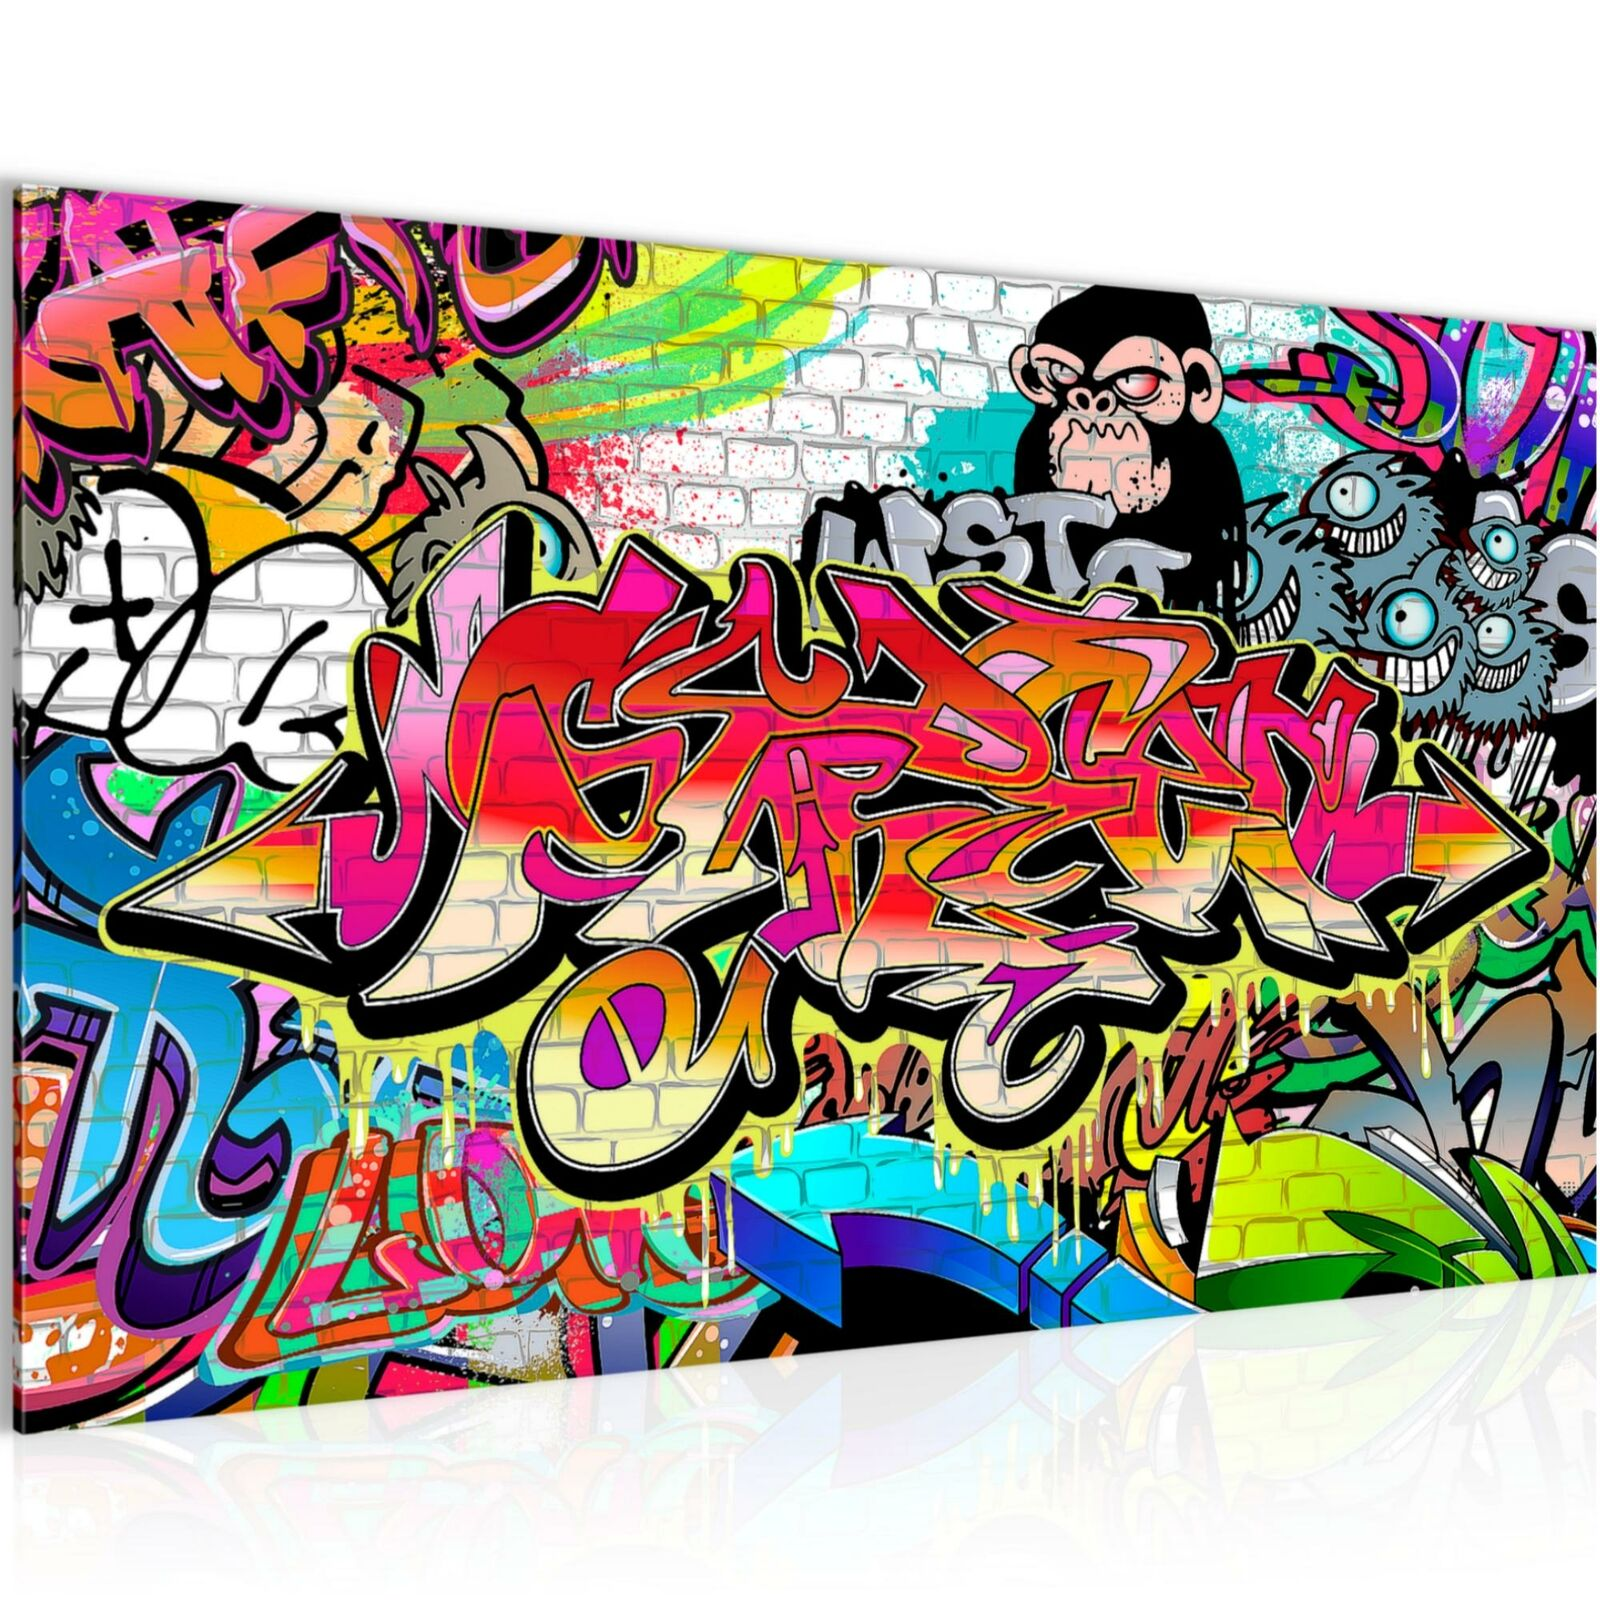 wandbild bilder graffiti vlies leinwand bild xxl kunstdruck 401714 eur 16 98 picclick de. Black Bedroom Furniture Sets. Home Design Ideas